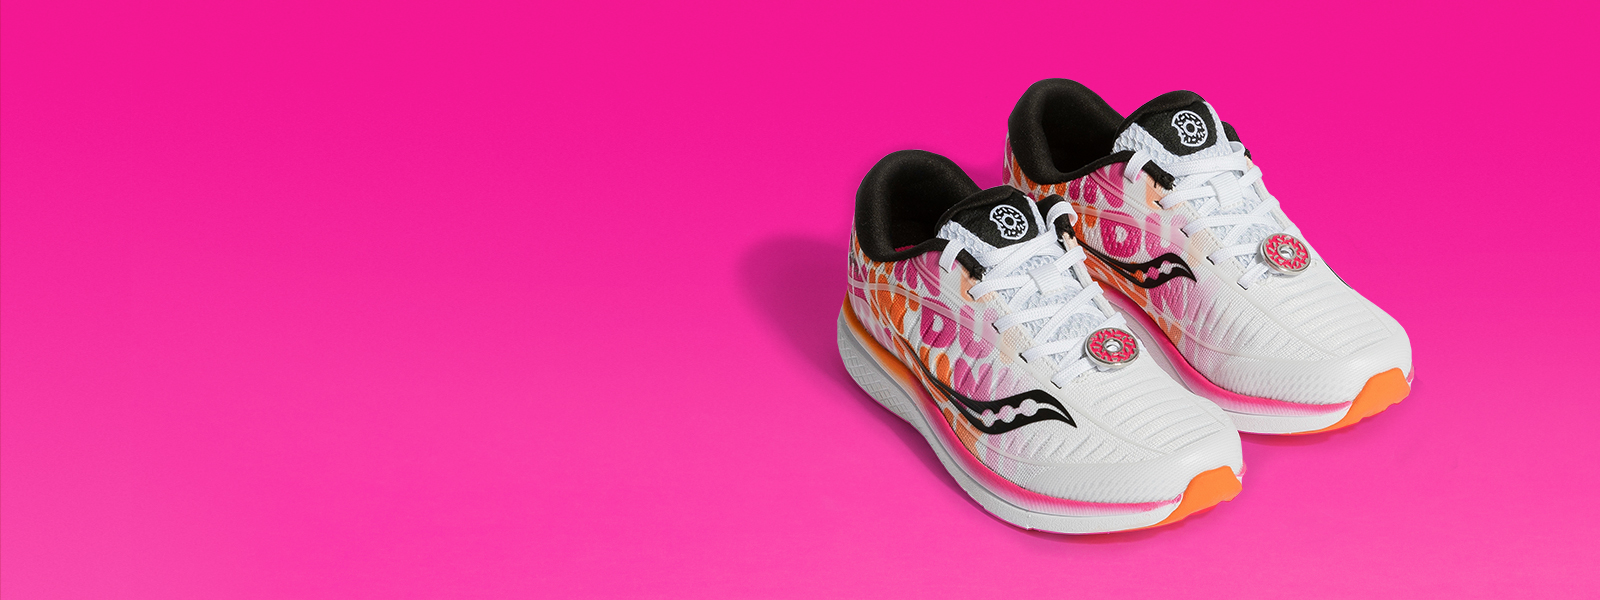 Shoe covered in candy sprinkles e017a1612